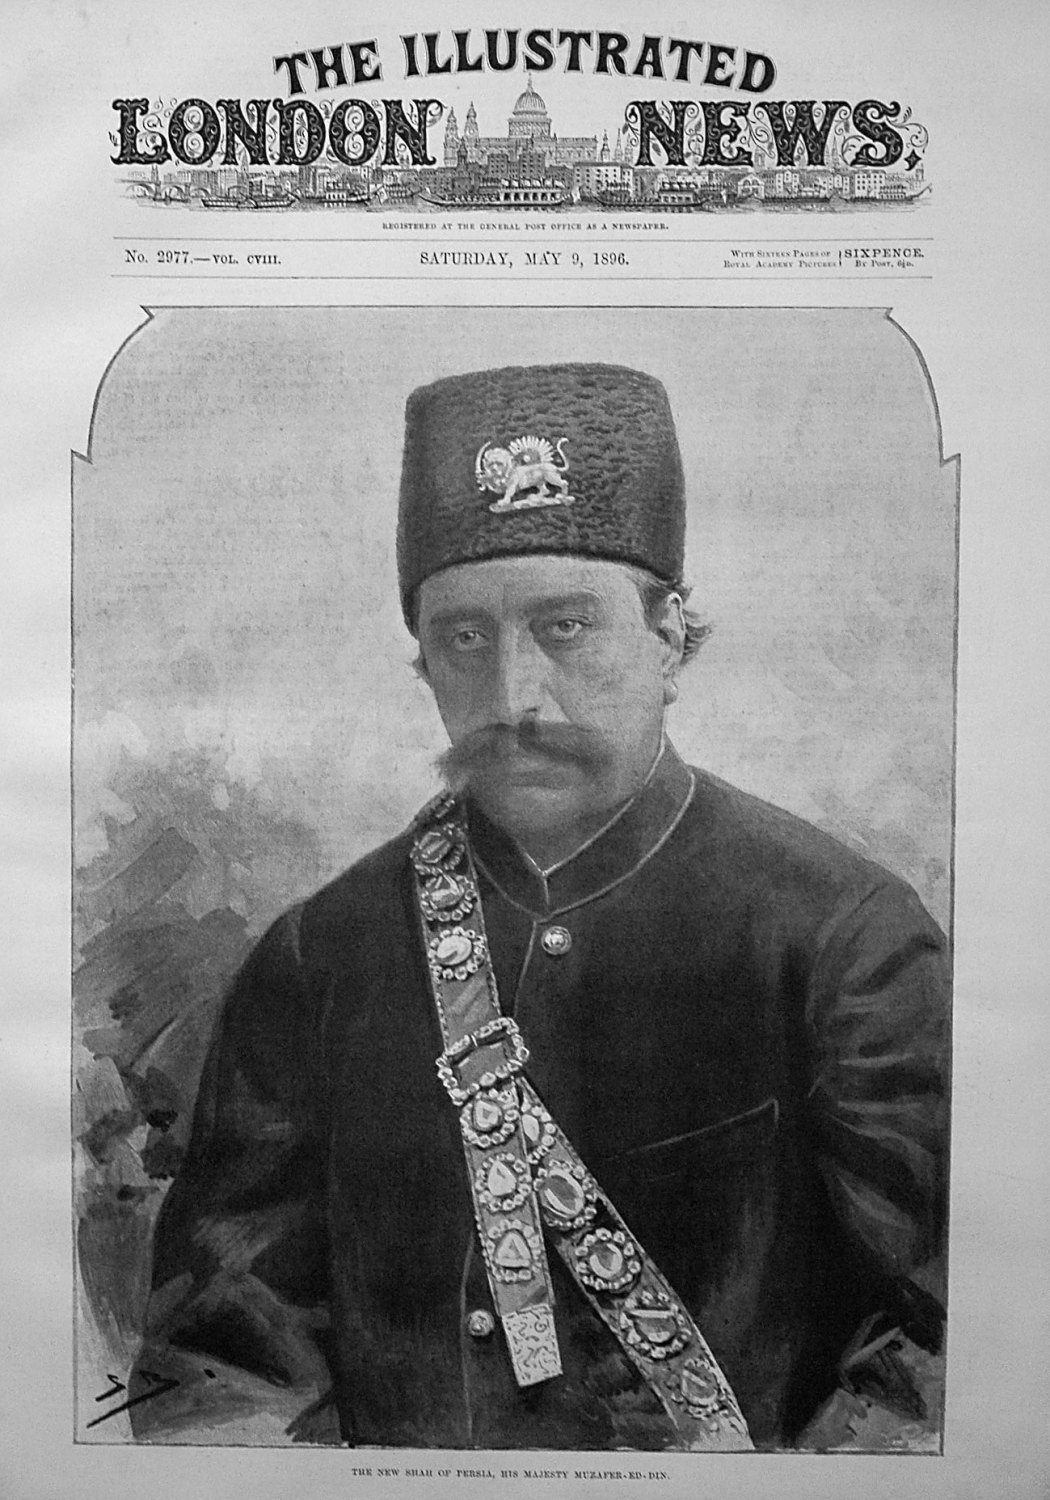 The New Shah of Persia, His Majesty Muzafer-Ed-Din. 1896